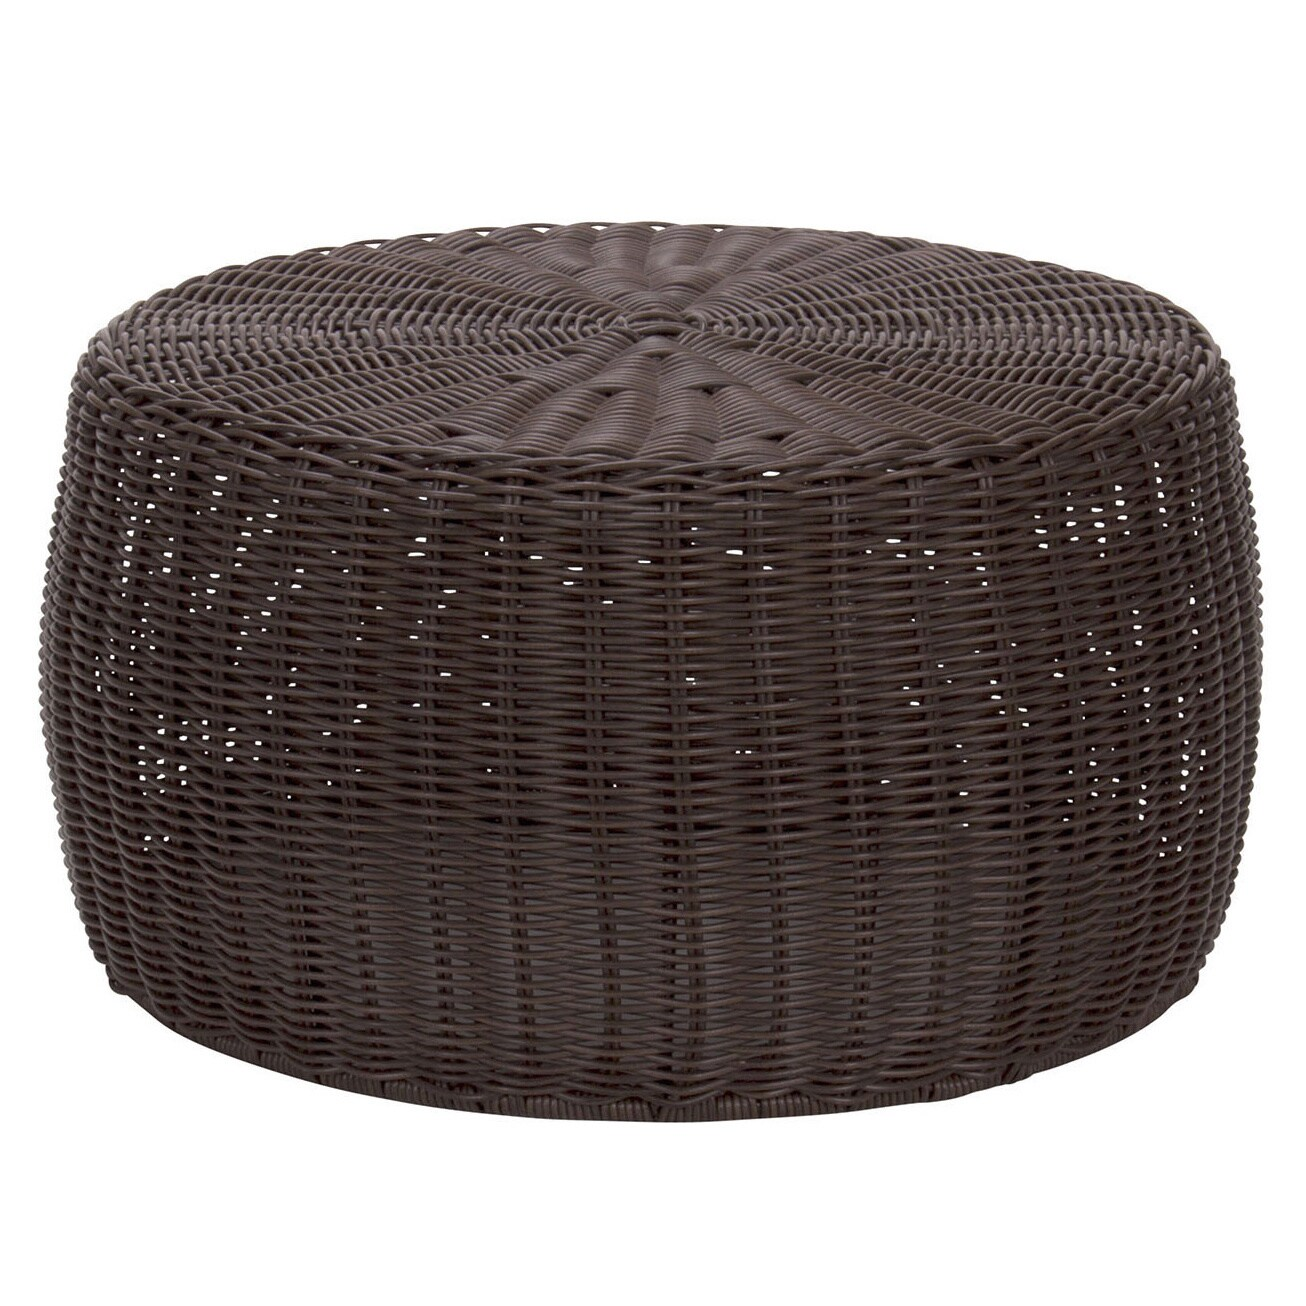 The Curated Nomad Tipton 9 Inch Brown Resin Wicker Ottoman